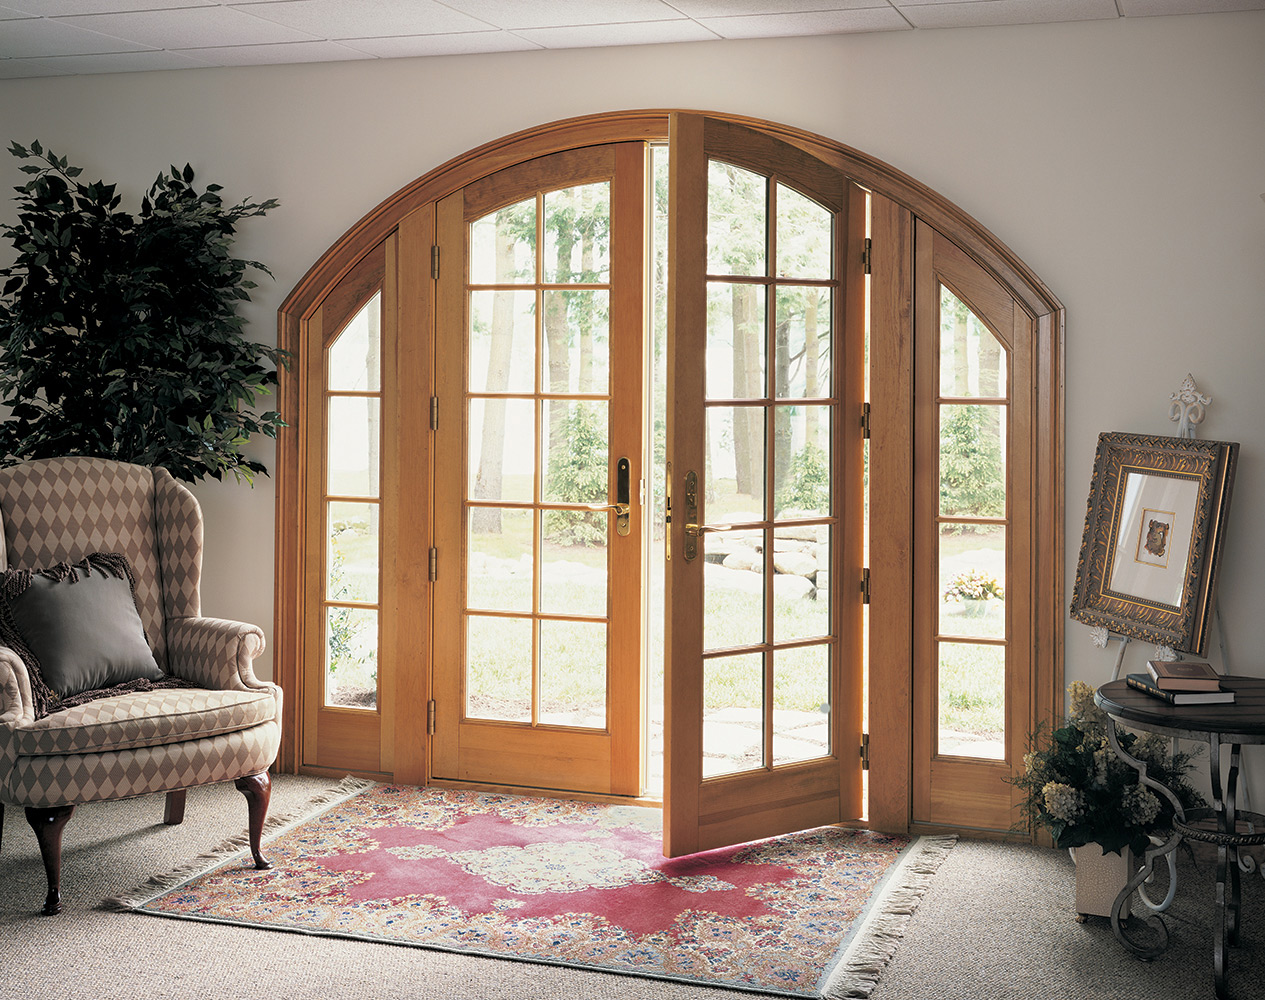 Replacement patio doors wisconsin hometowne windows for Patio windows and doors